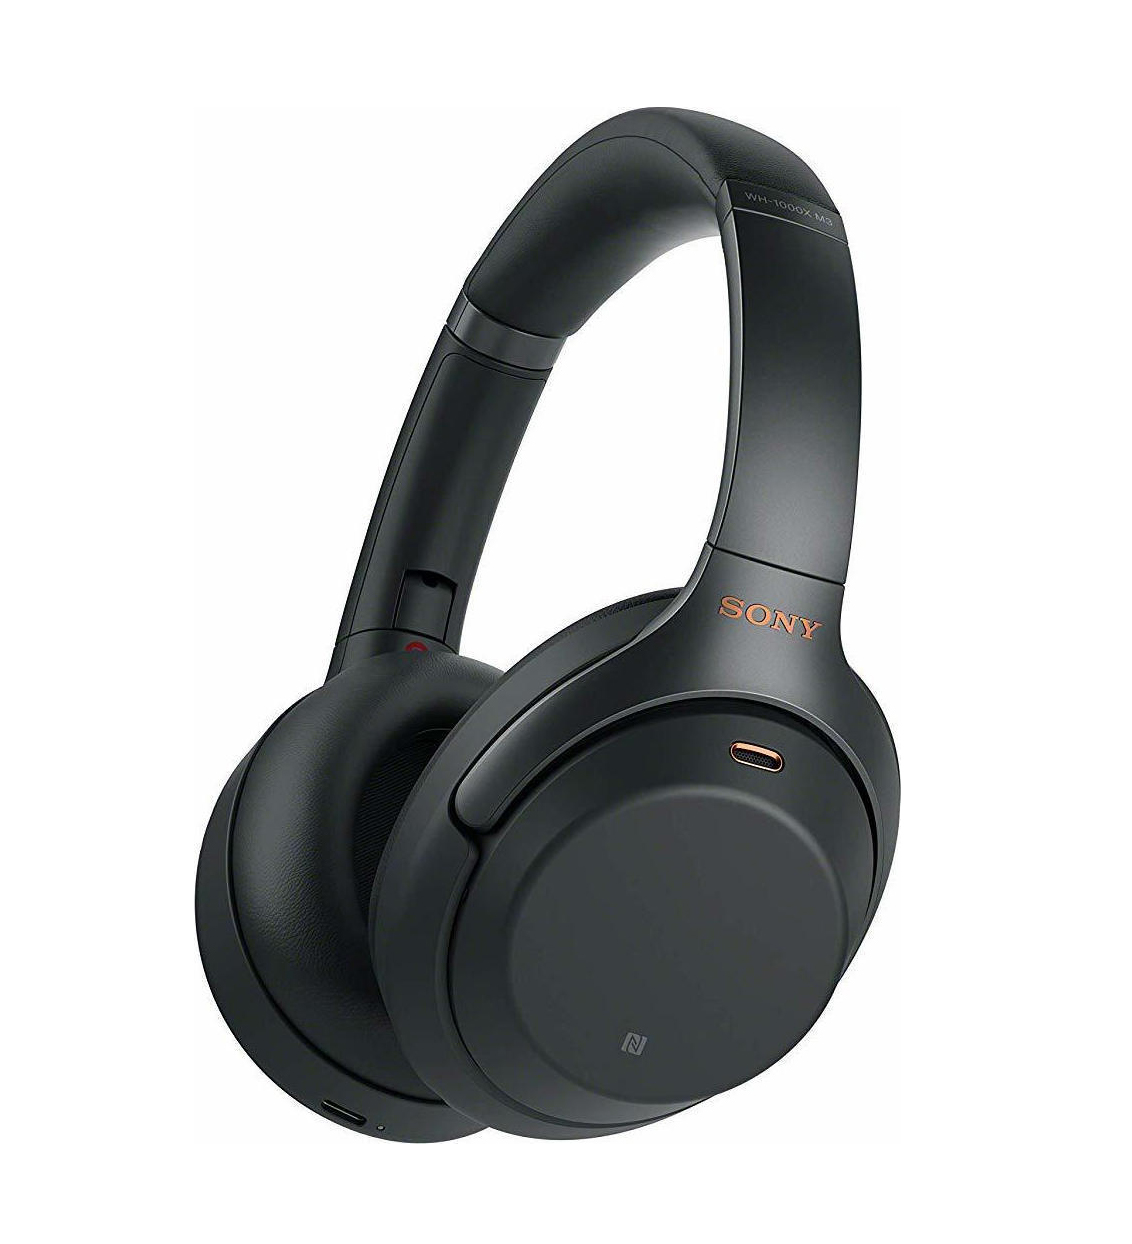 Sony WH-1000XM3 Noise-Cancelling Bluetooth Headphones Black